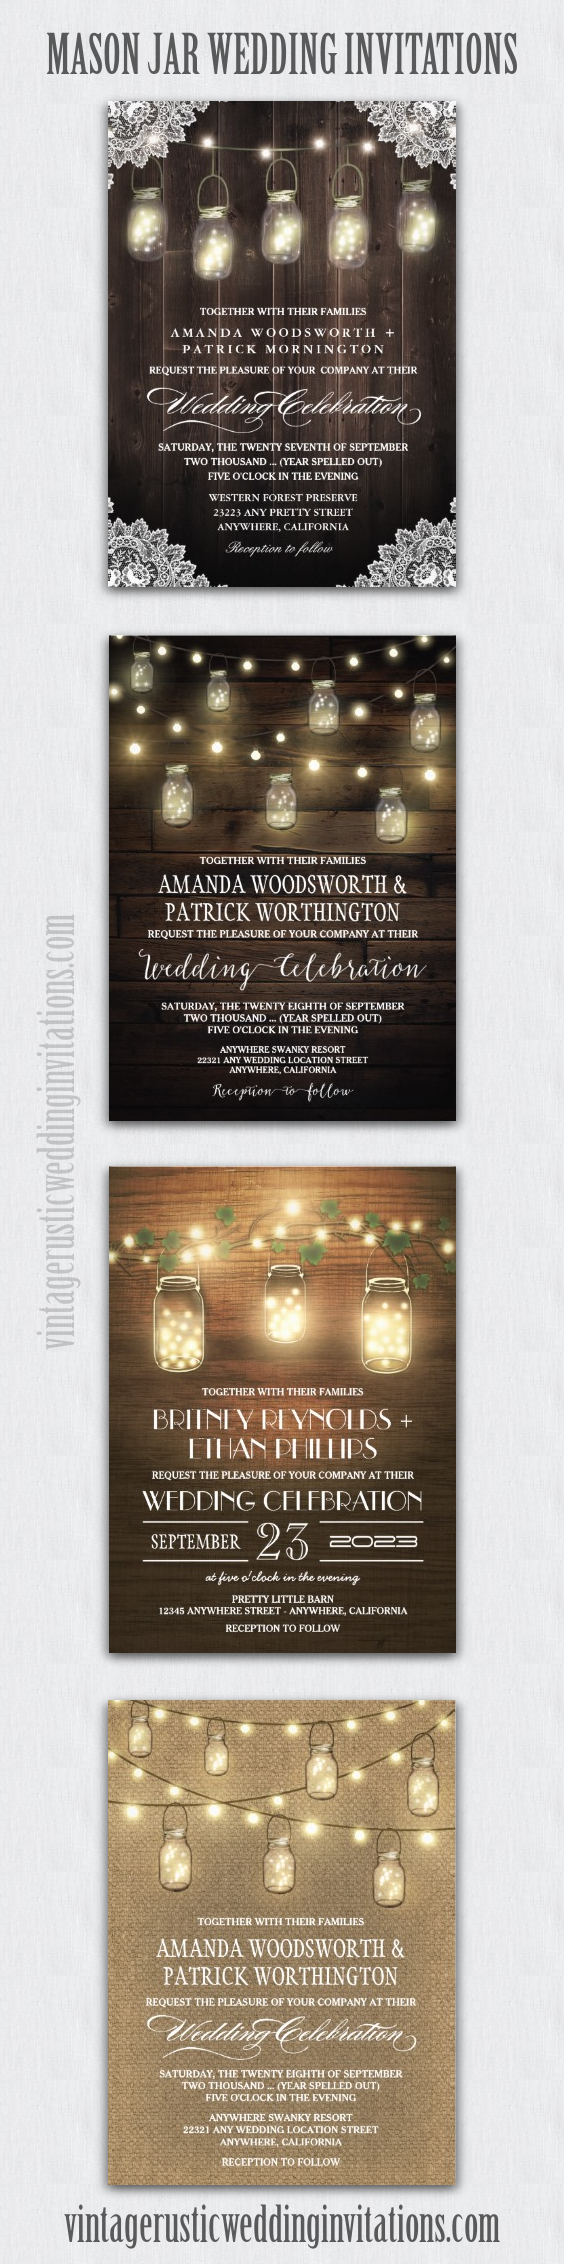 Mason Jar Wedding Invitations Barn Wood Burlap String Lights And